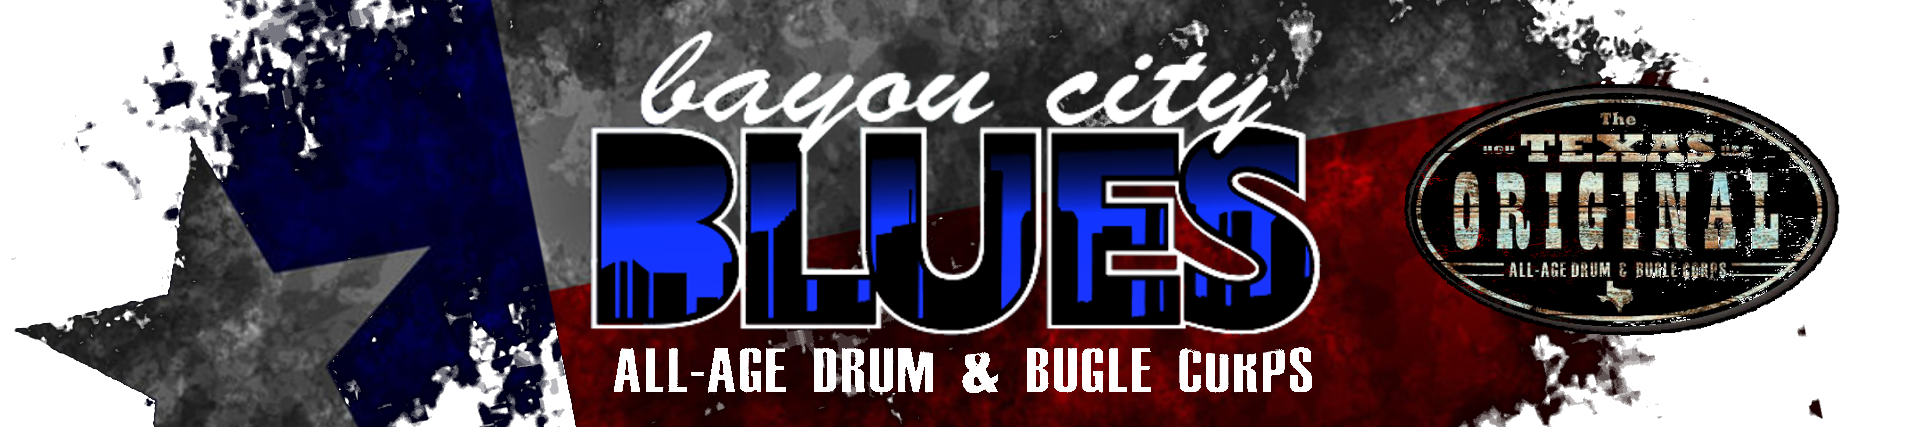 Bayou City Blues Senior Drum & Bugle Corps